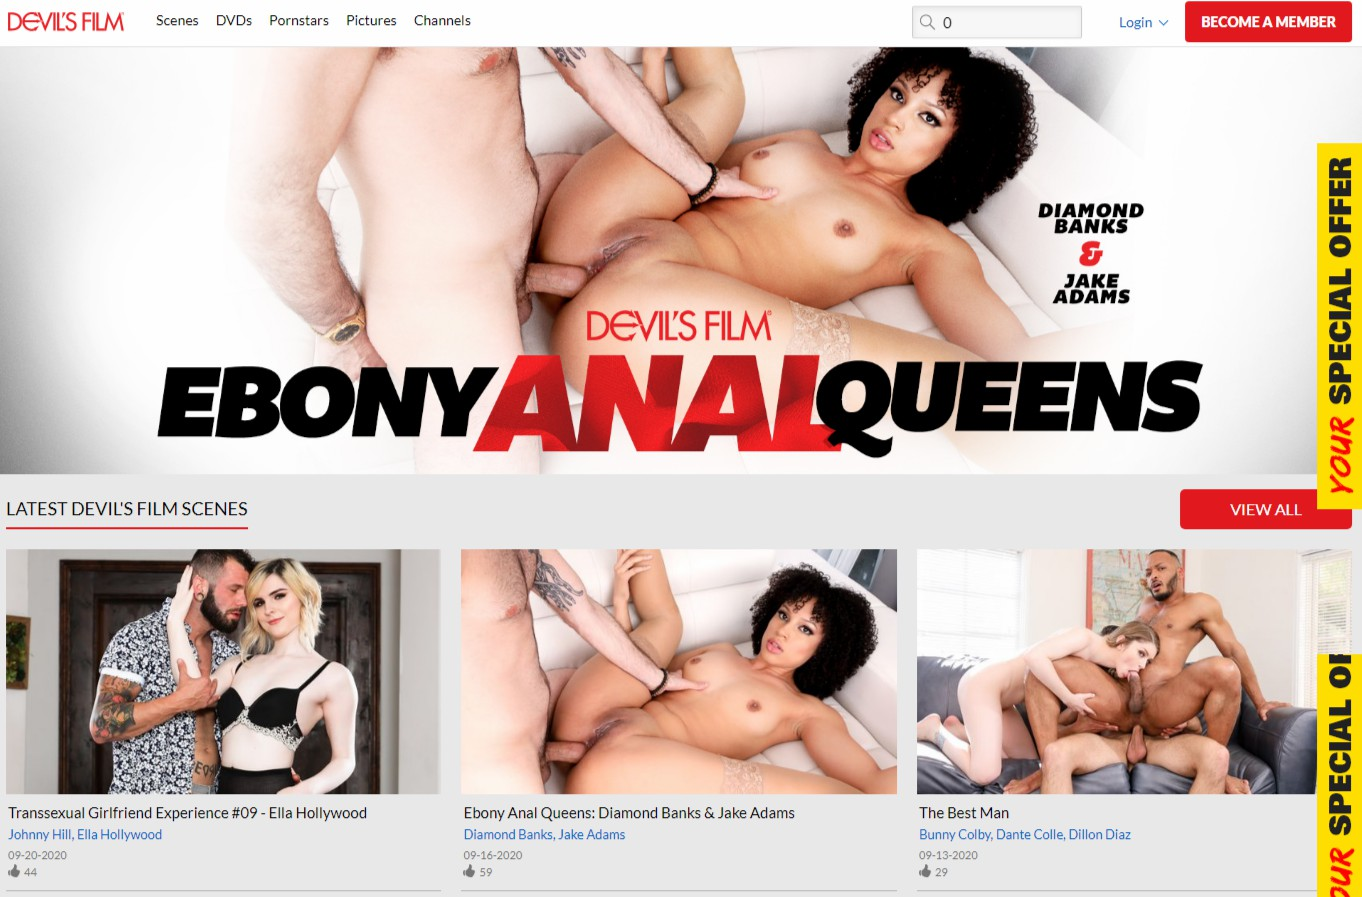 Devilsfilm - Best Premium Porn Sites